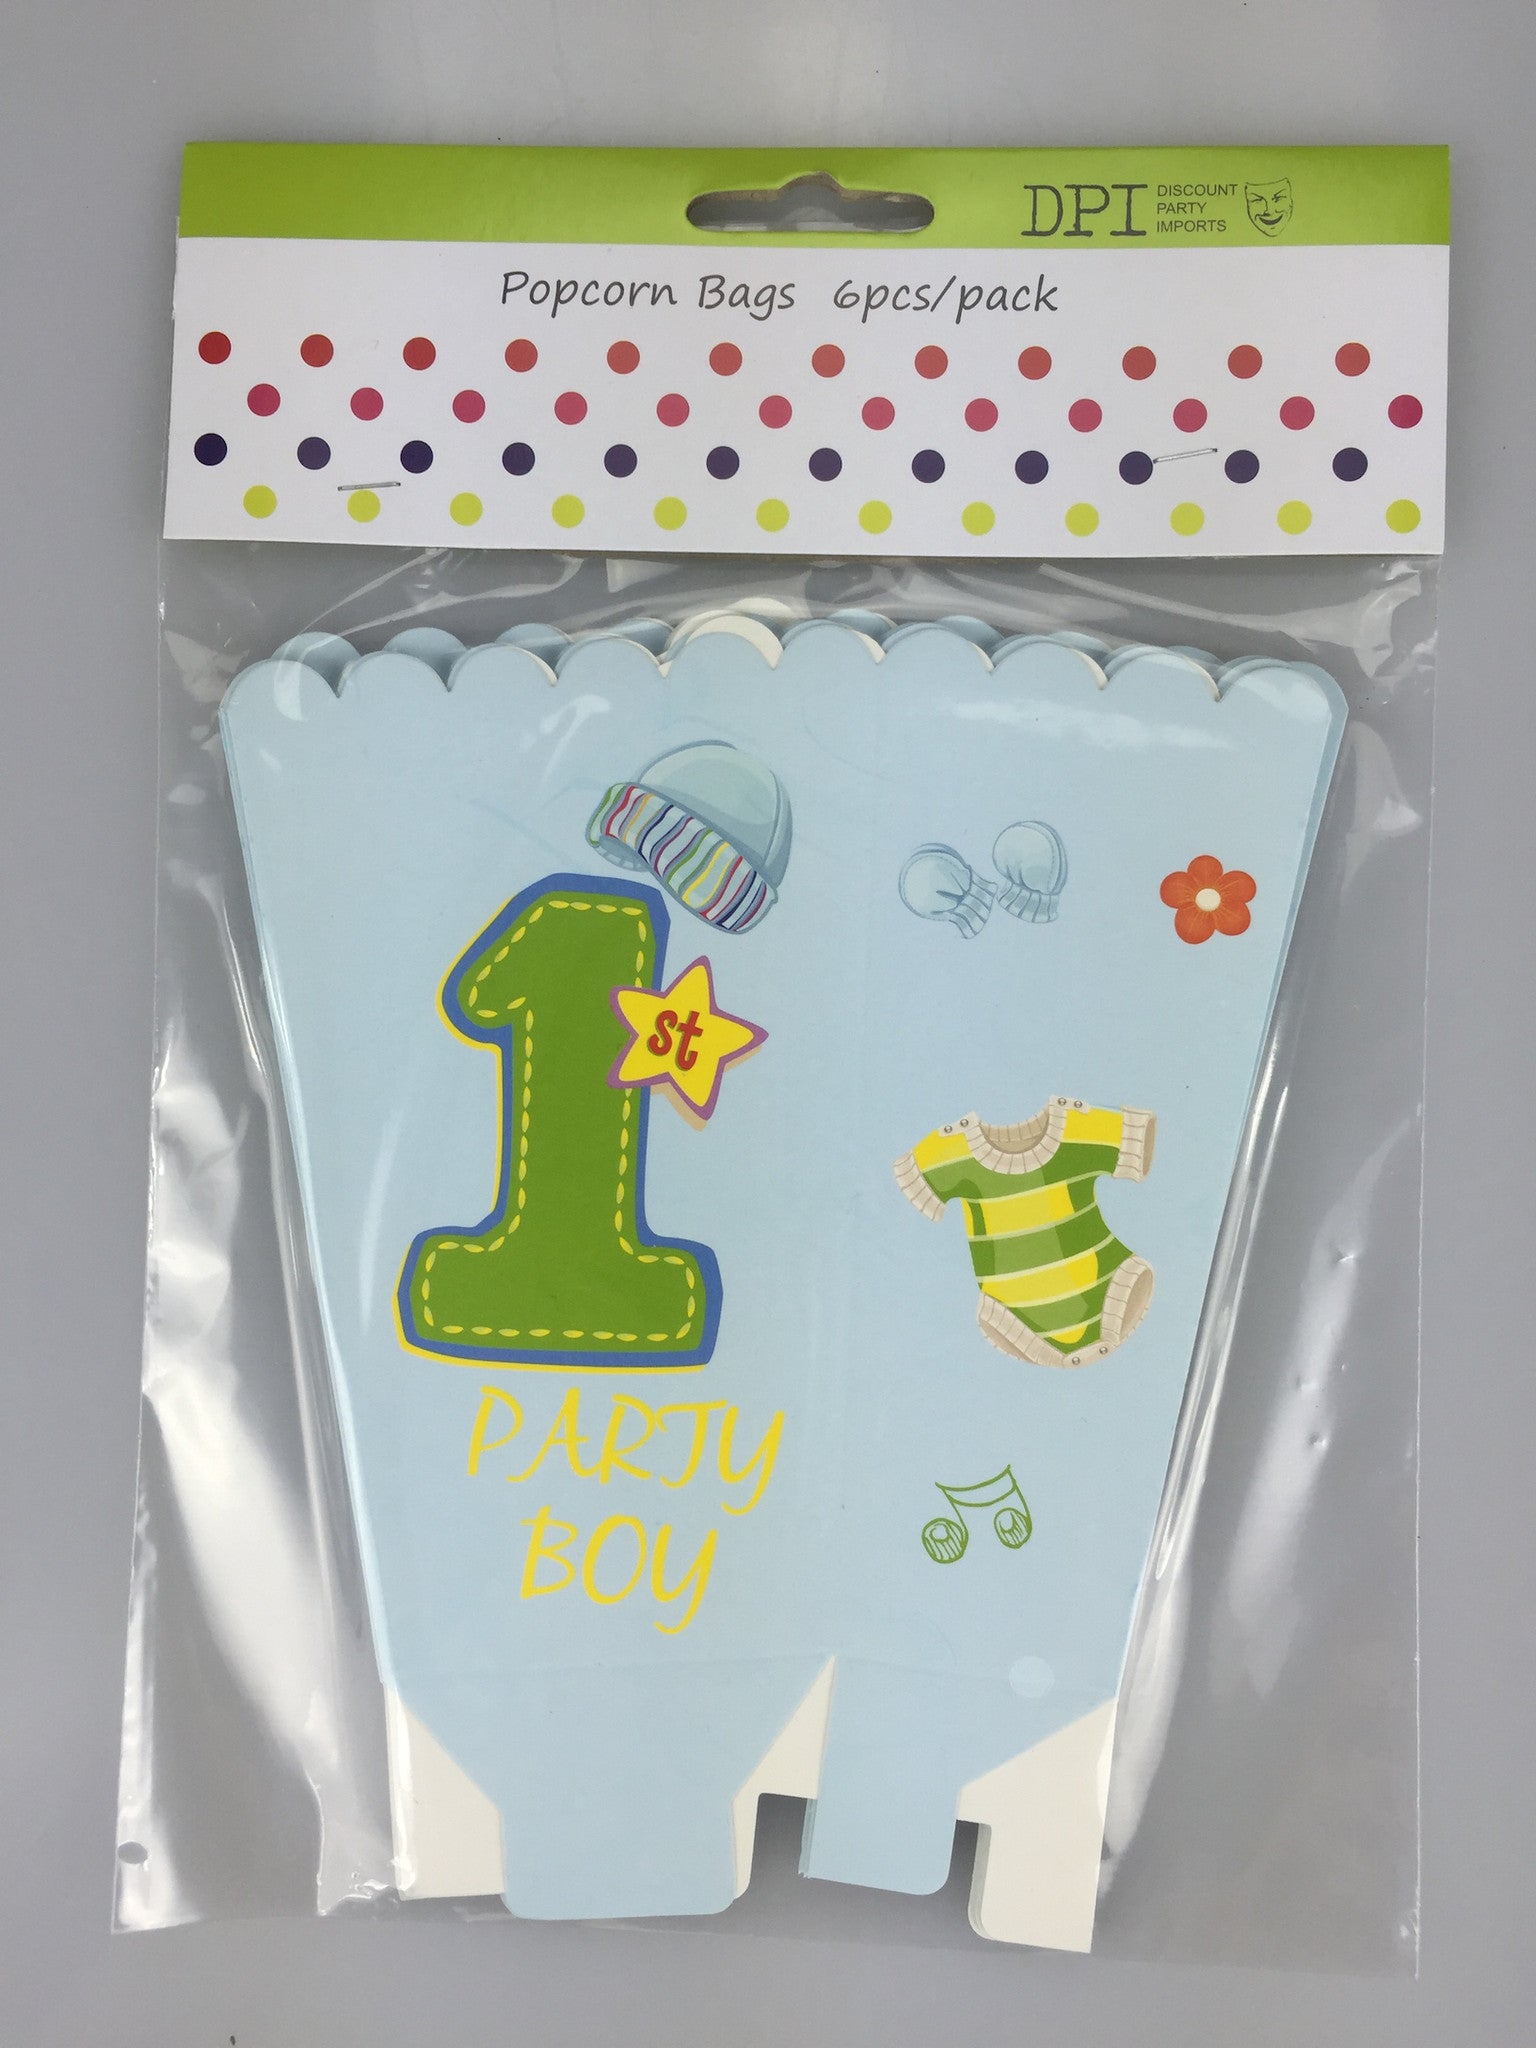 1ST BIRTHDAY BOY POPCORN BAGS 6 PACK